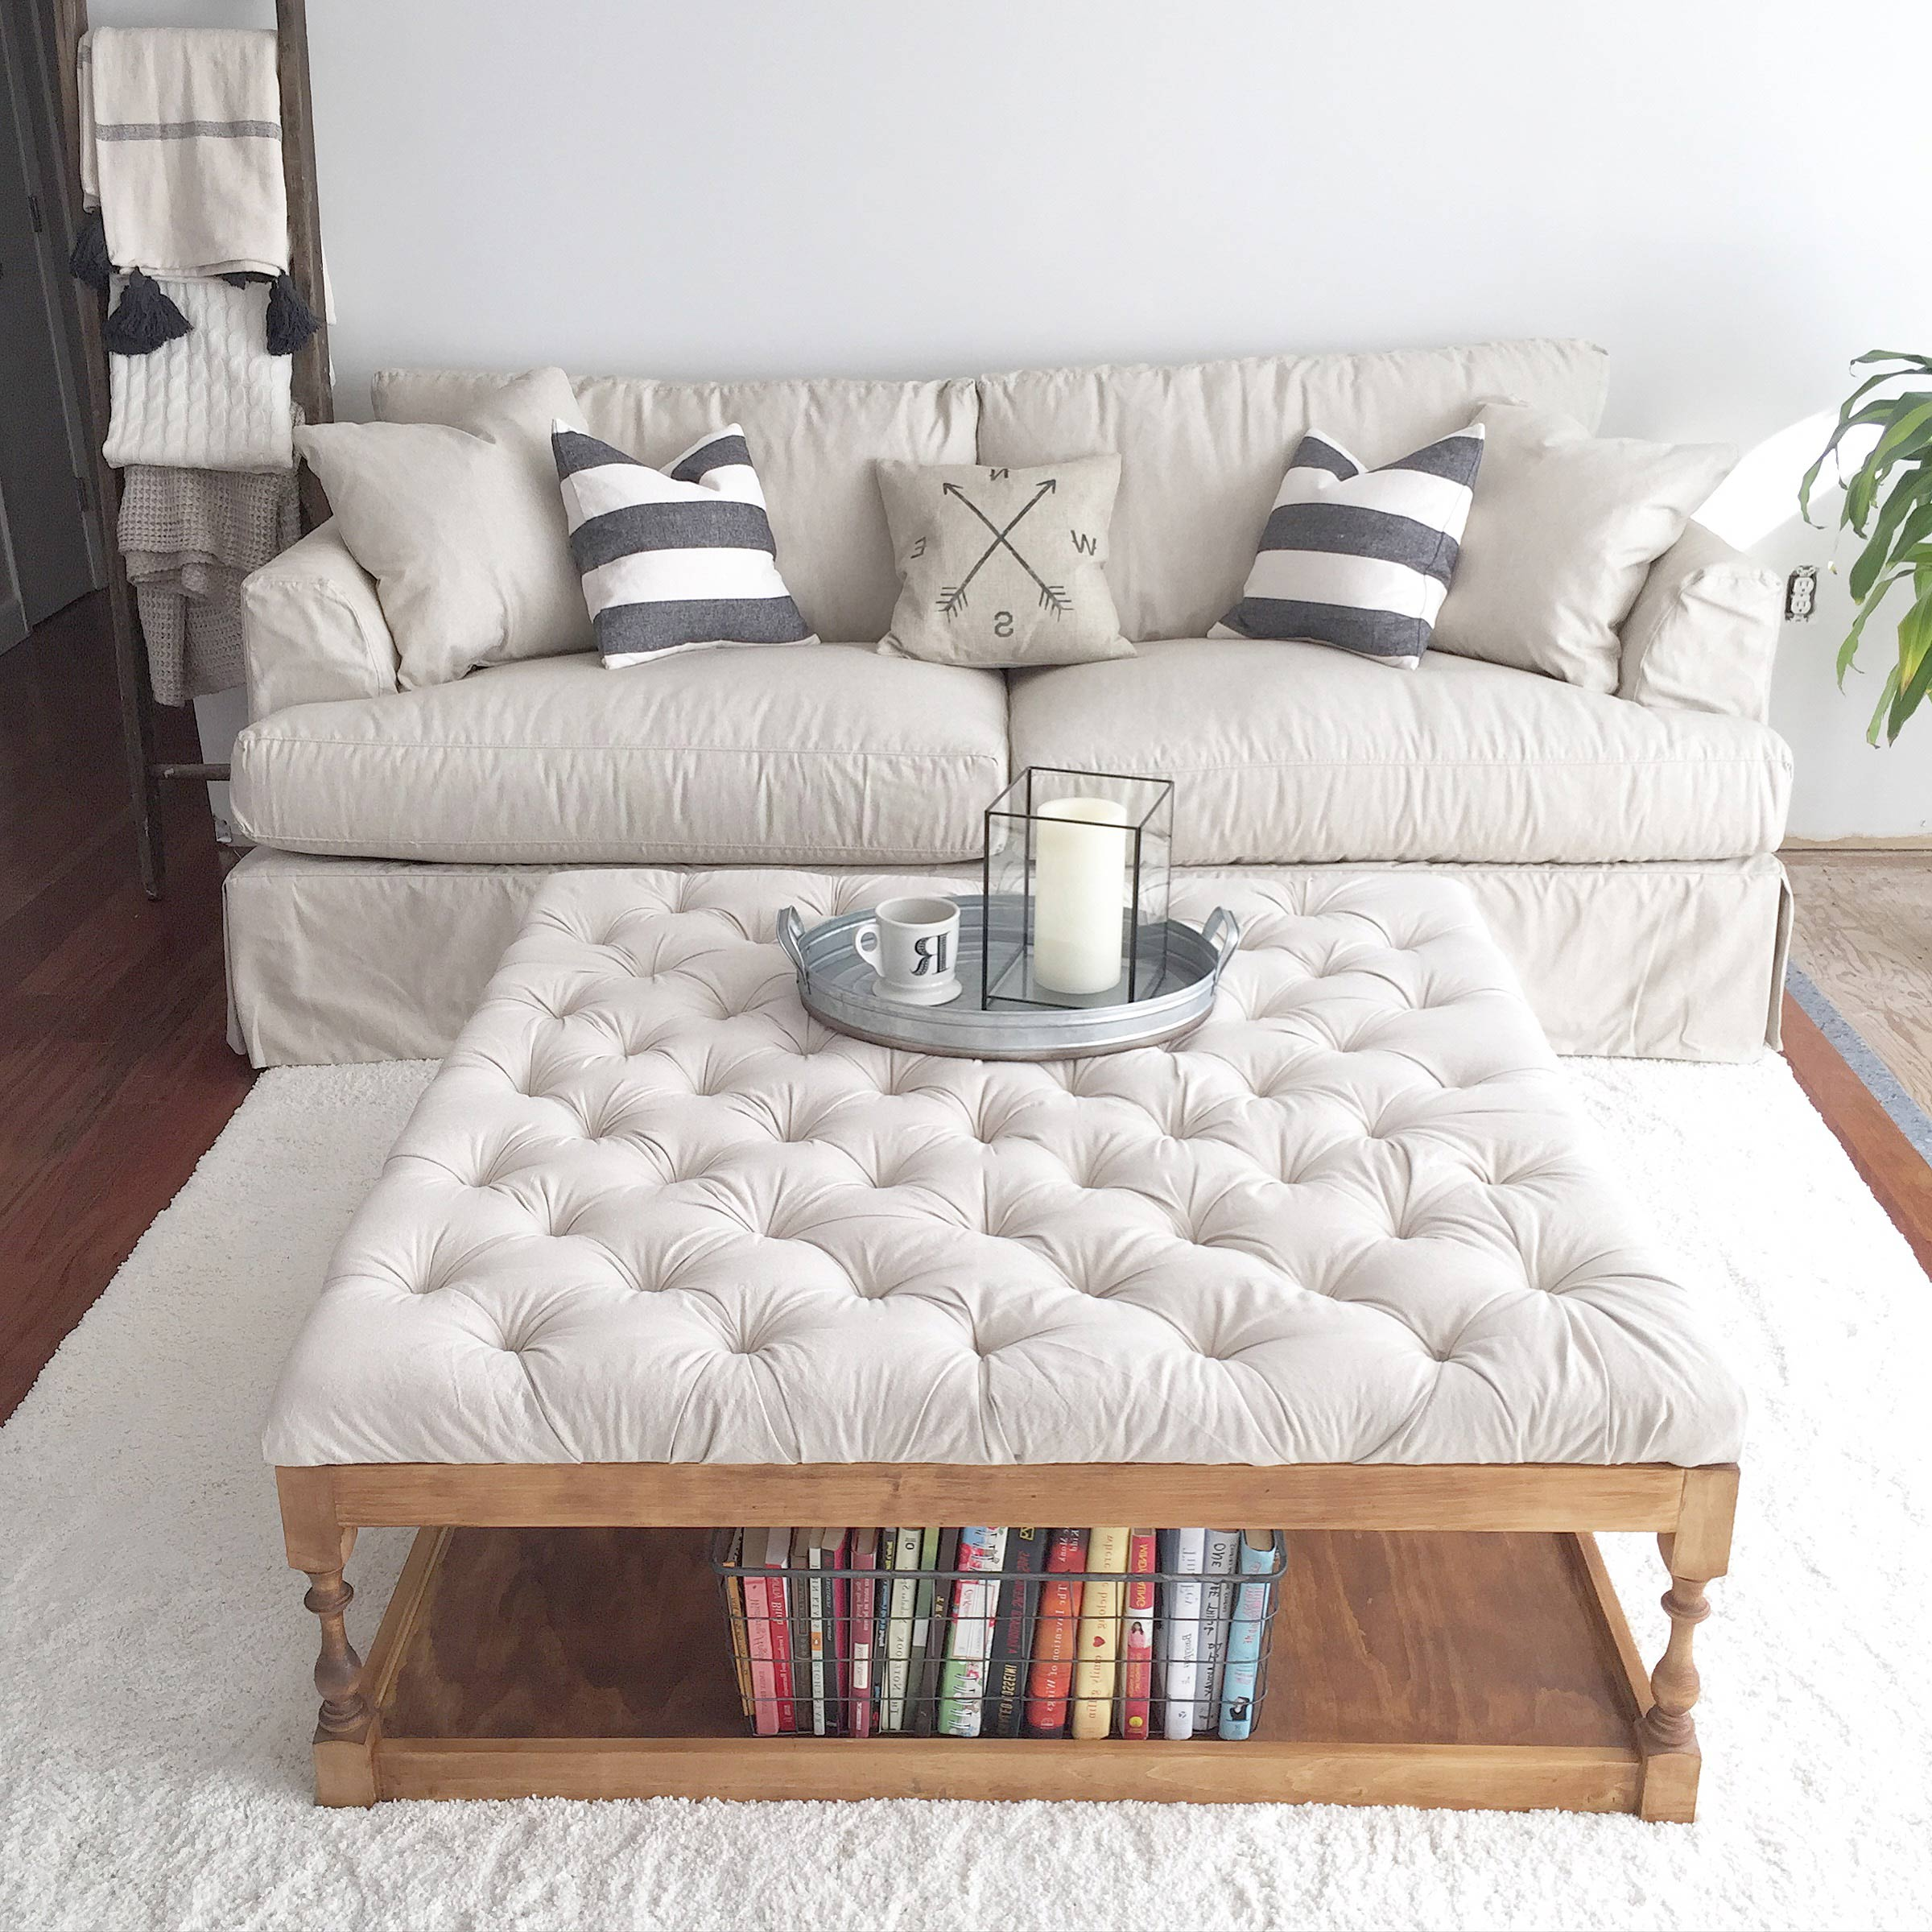 modern square tufted white leather ottoman coffee table